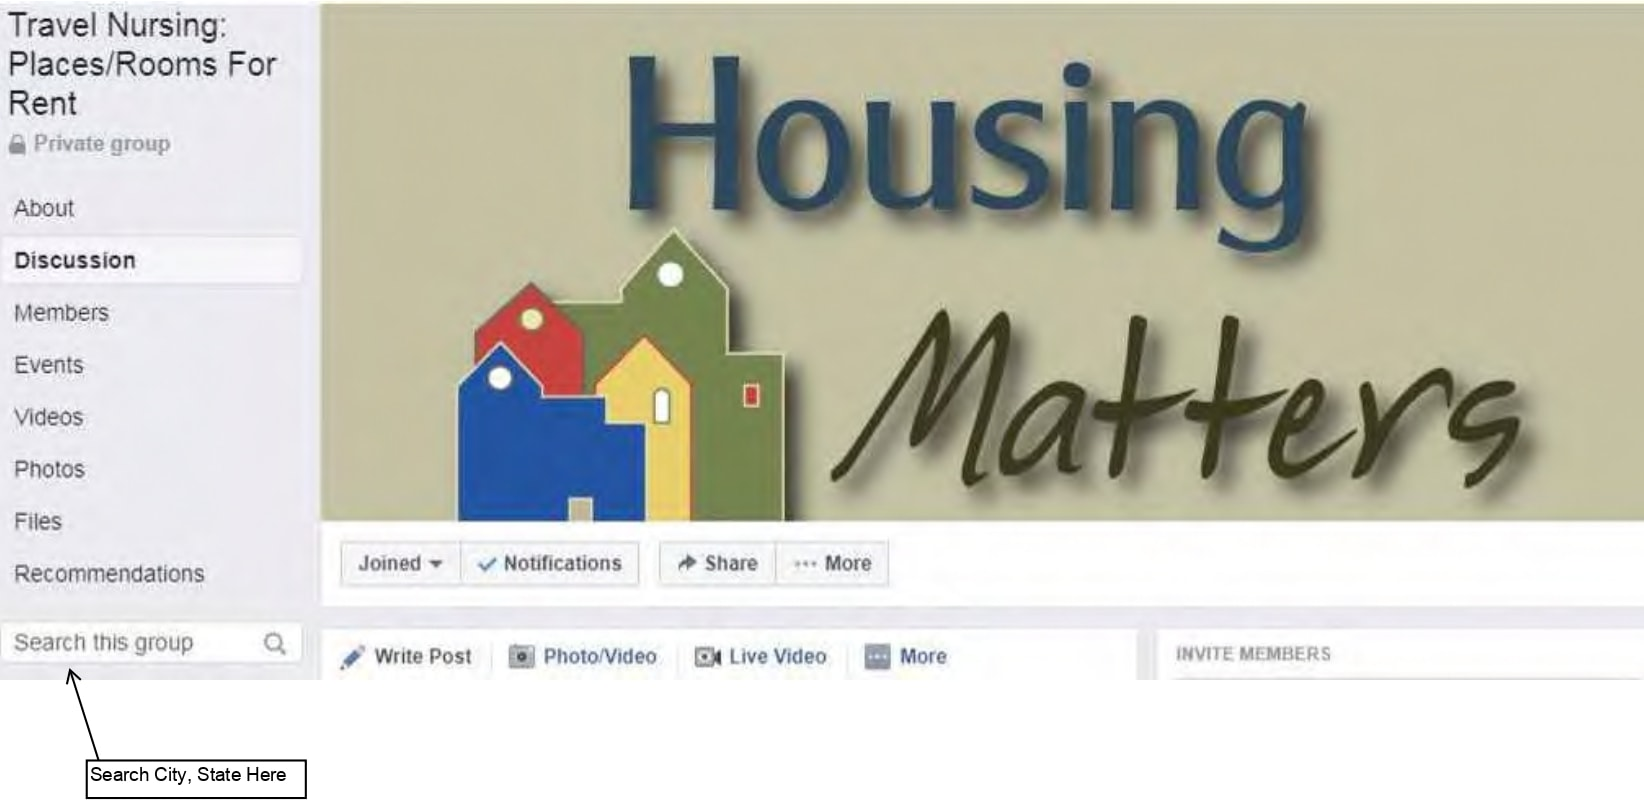 Travel Nursing Housing Search Facebook